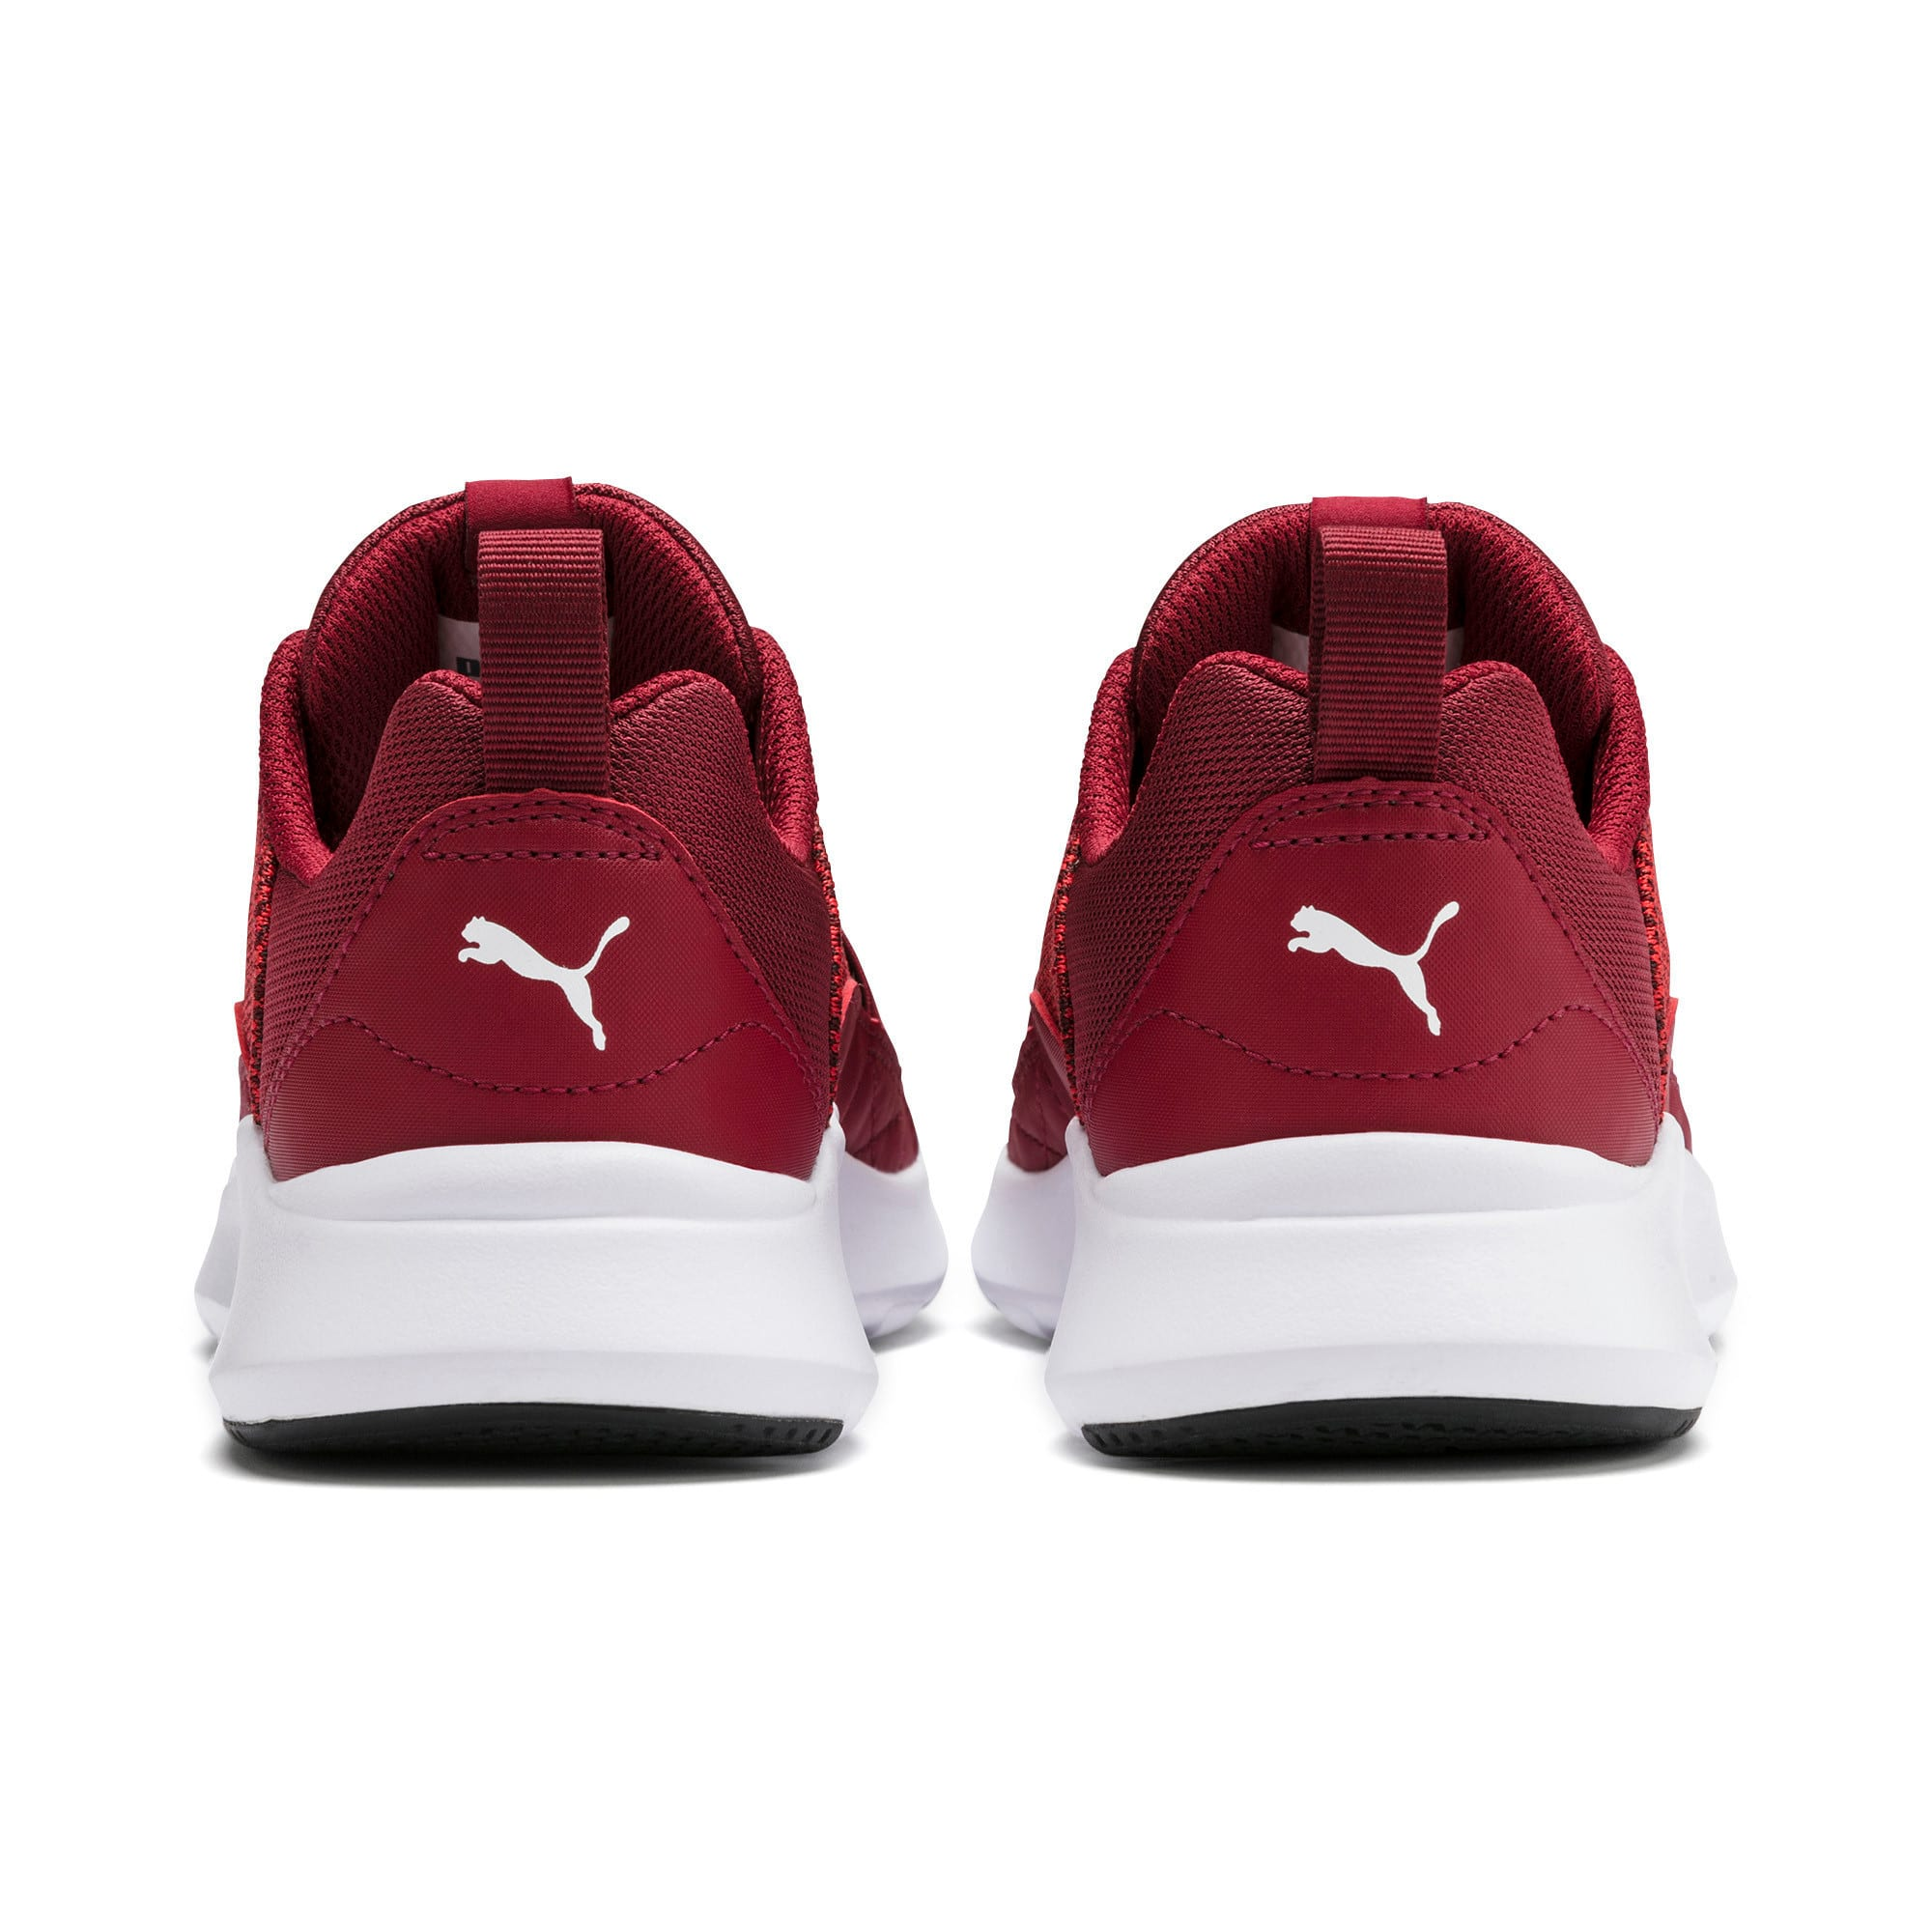 Thumbnail 4 of Wired Knit Youth Trainers, Rhubarb-Puma White, medium-IND